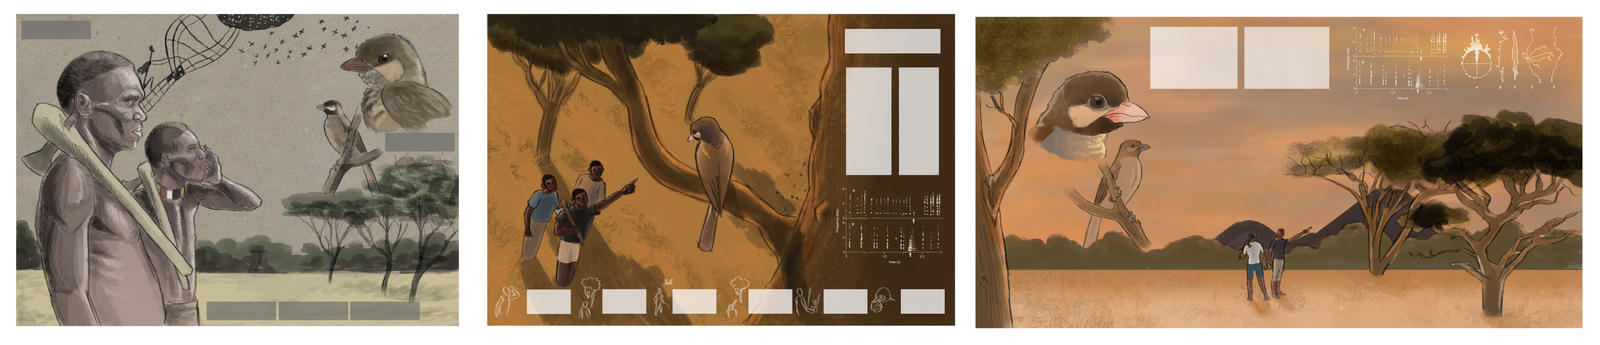 Greater Honeyguide layout concepts